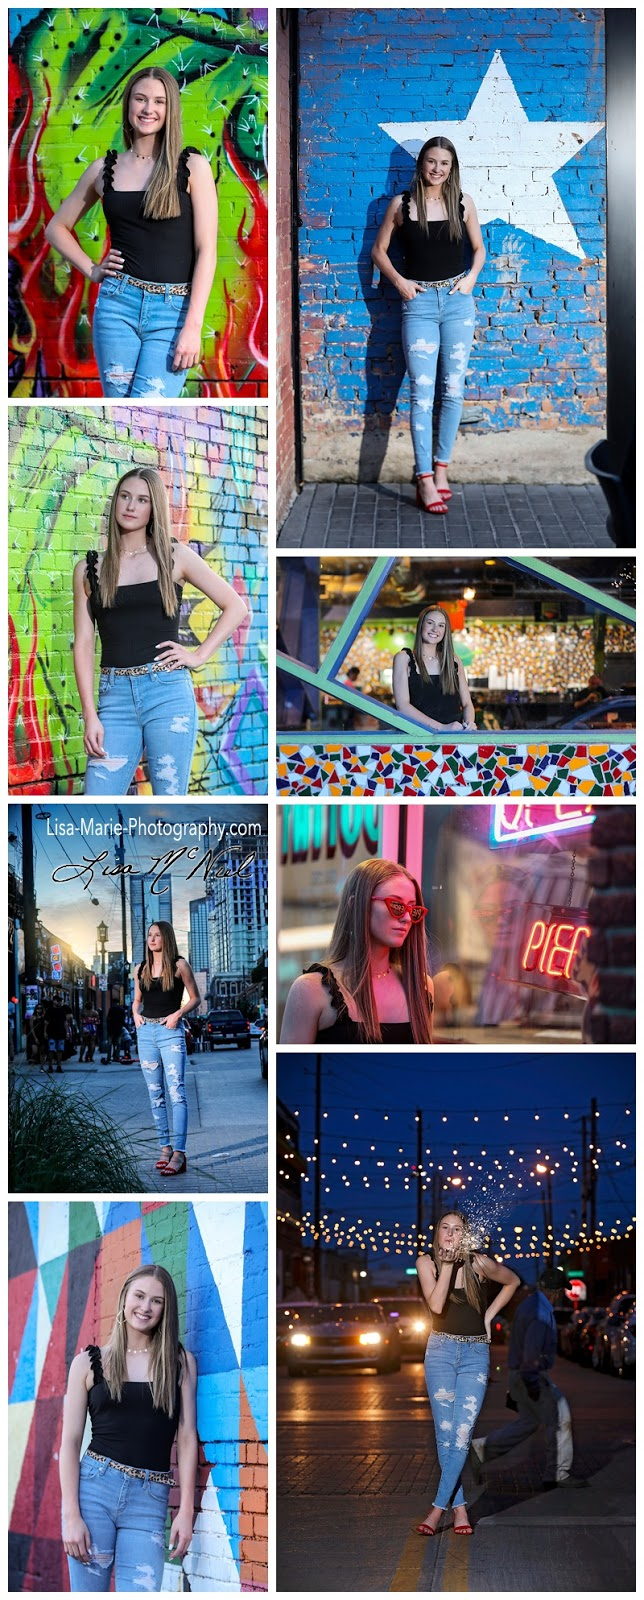 pictures of teen by variety of walls in urban setting